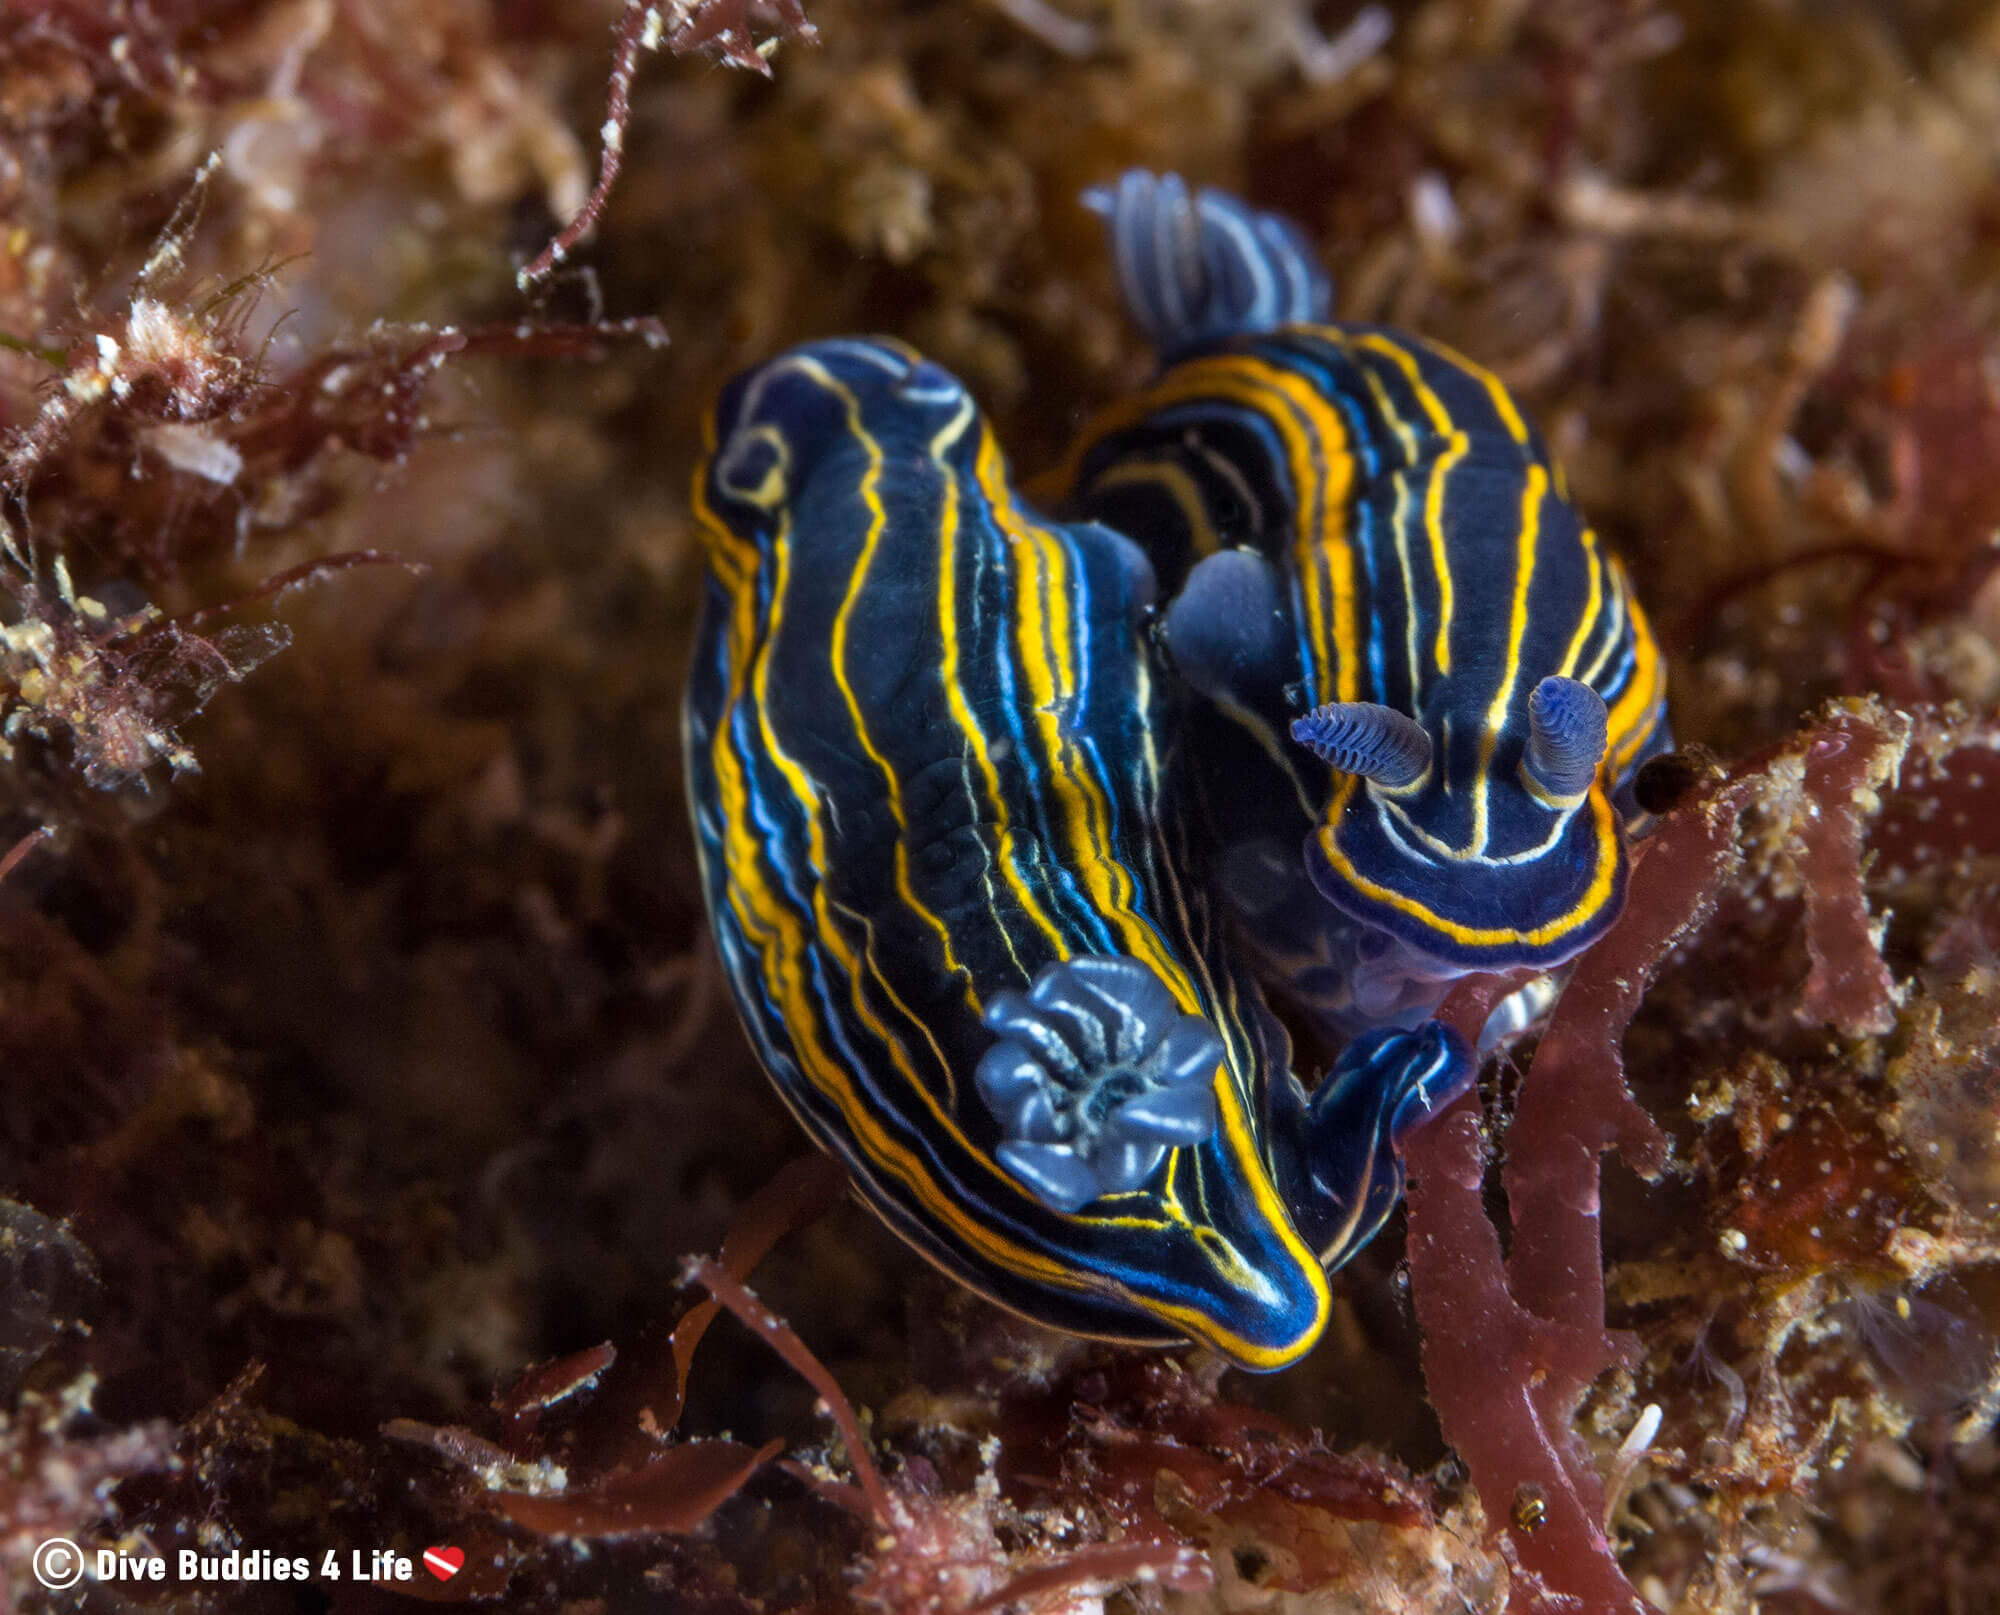 Scuba Diving and Spotting Two Ying and Yang Nudibranches on the Flora of Berlengas Islands, Portugal